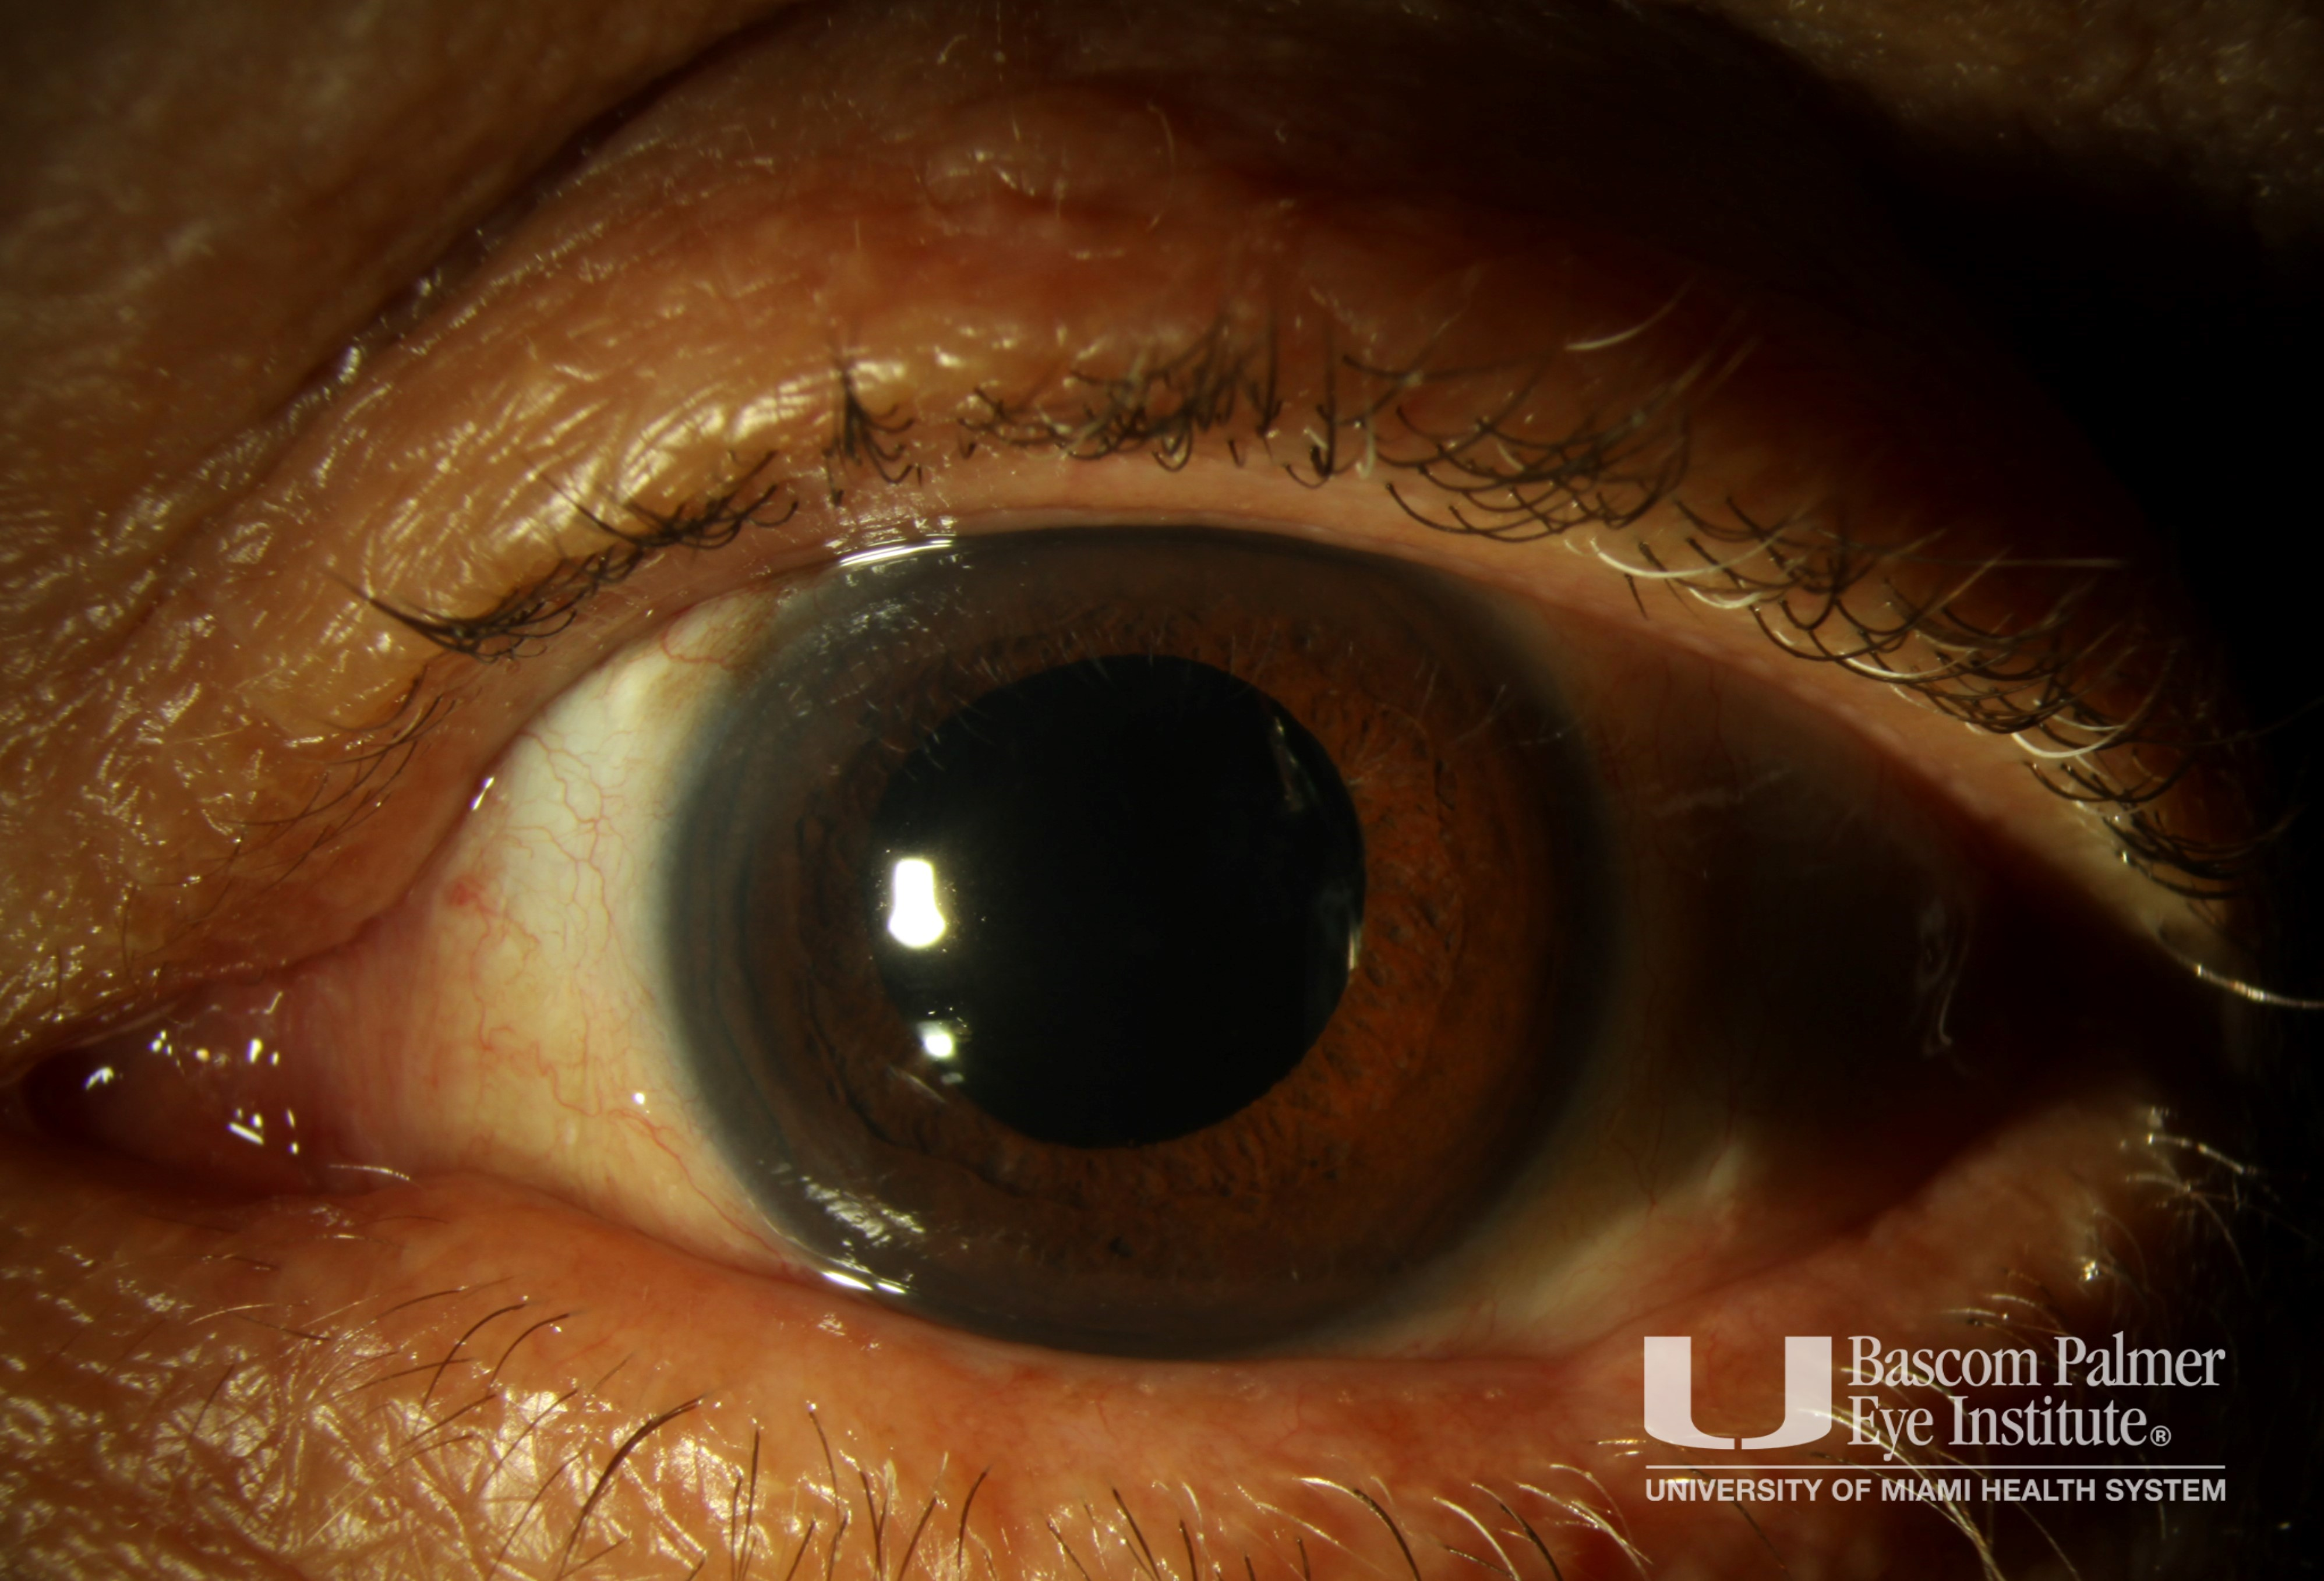 Extruded Scleral Buckle with Scleritis